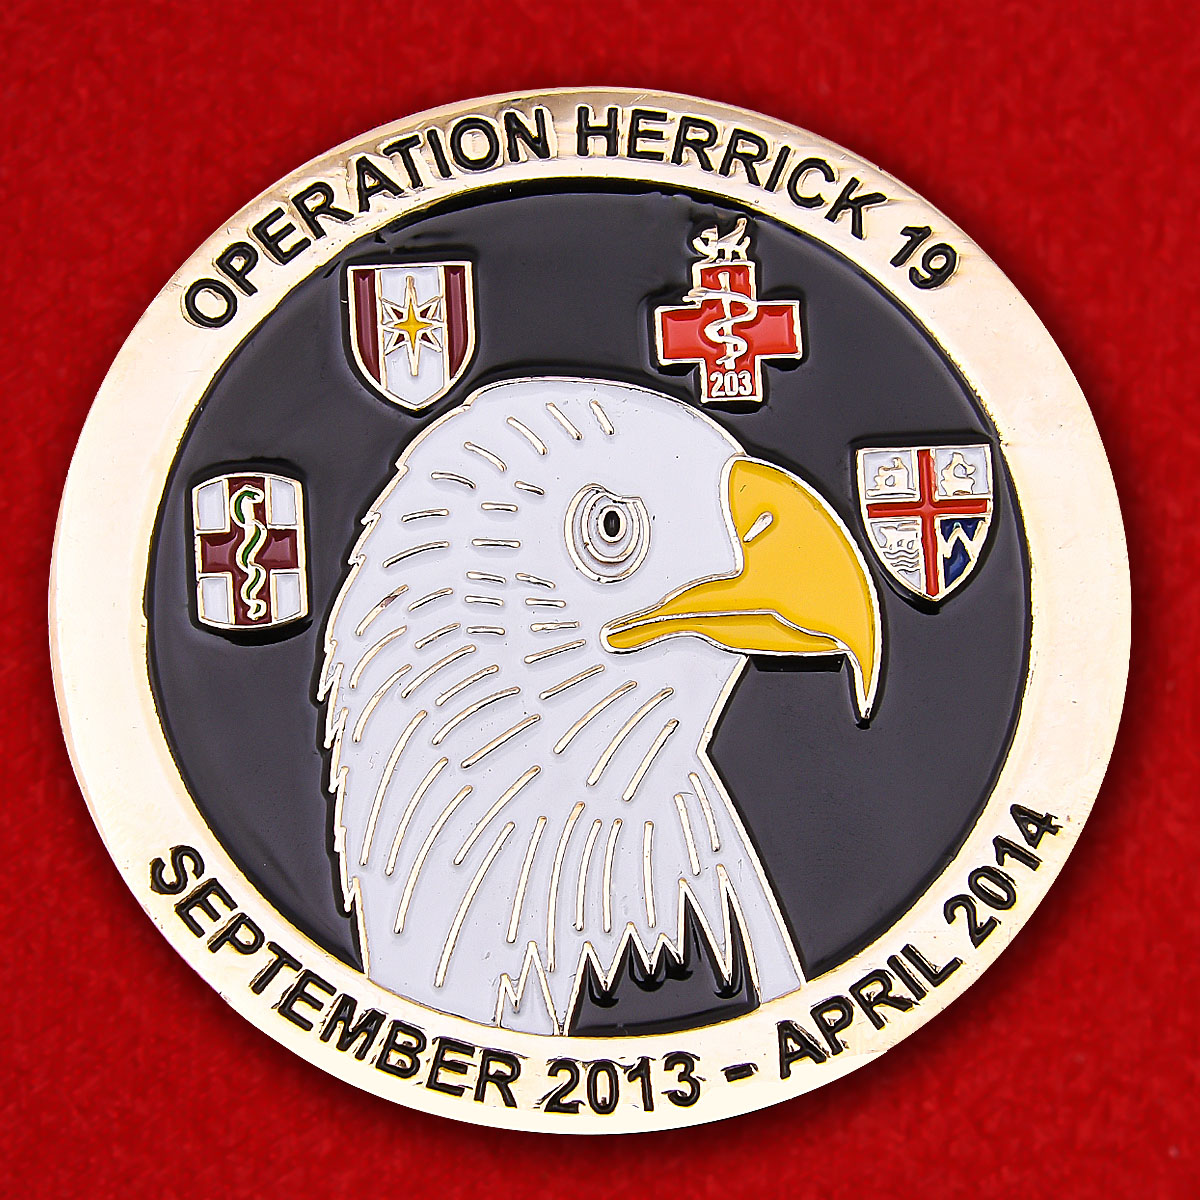 NATO Bastion Hospital Helmand, Afghanistan Operation Herrick 19 Challenge Coin